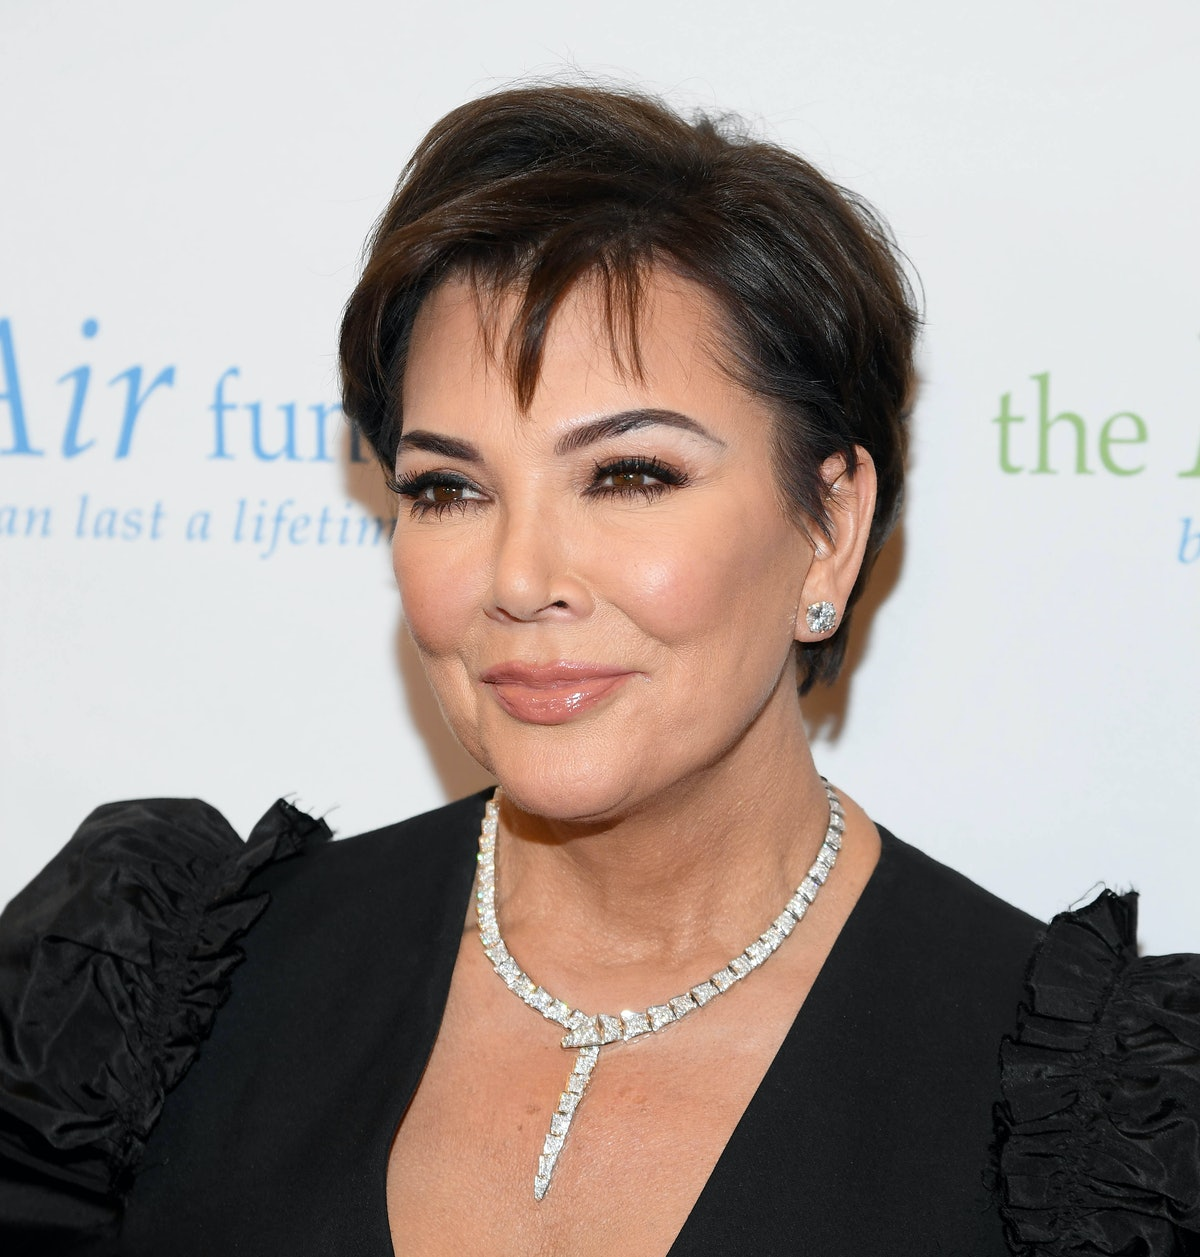 Why Did Kim Kardashian Name Her Son Psalm? Kris Jenner Has Settled All Speculation